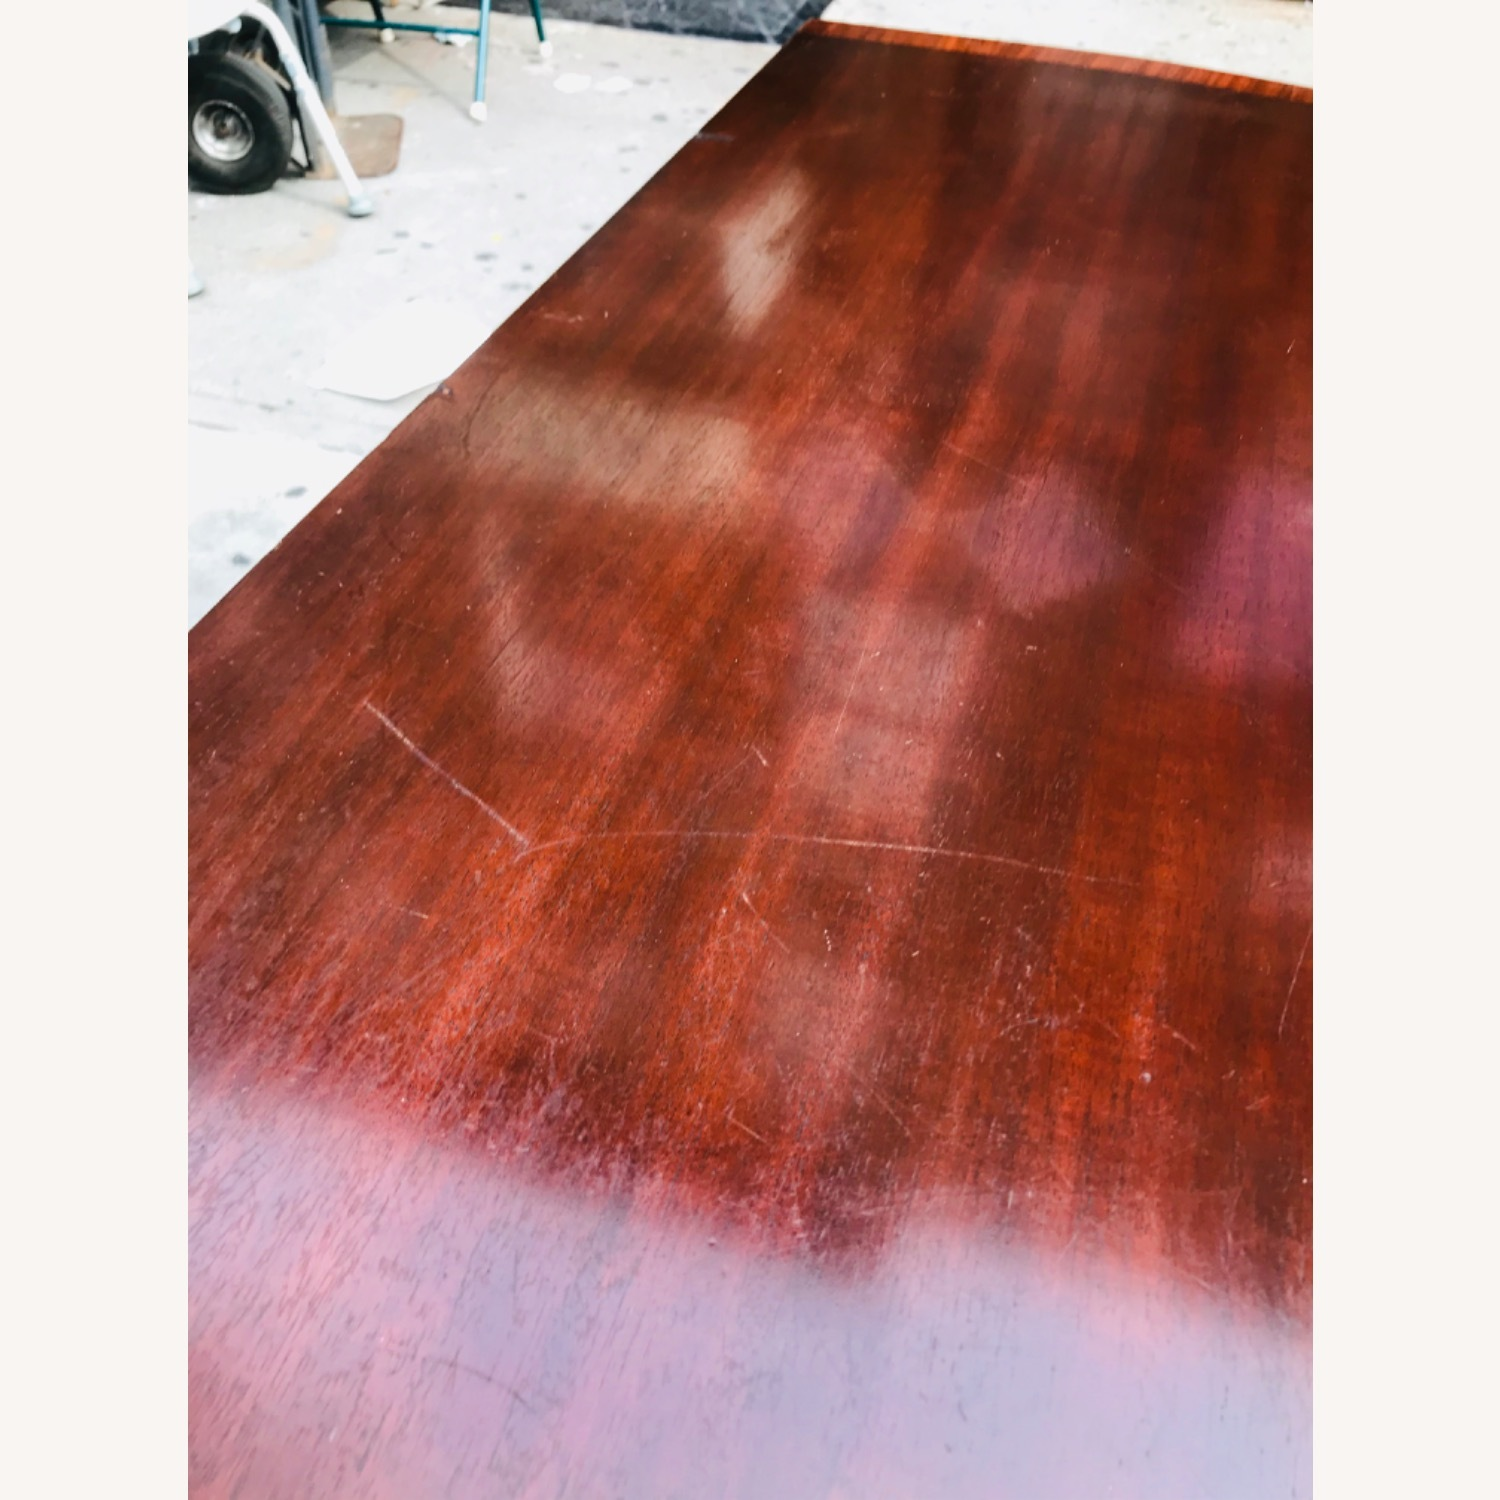 Antique 1920s Mahogany Table w/3 Leaves  - image-13